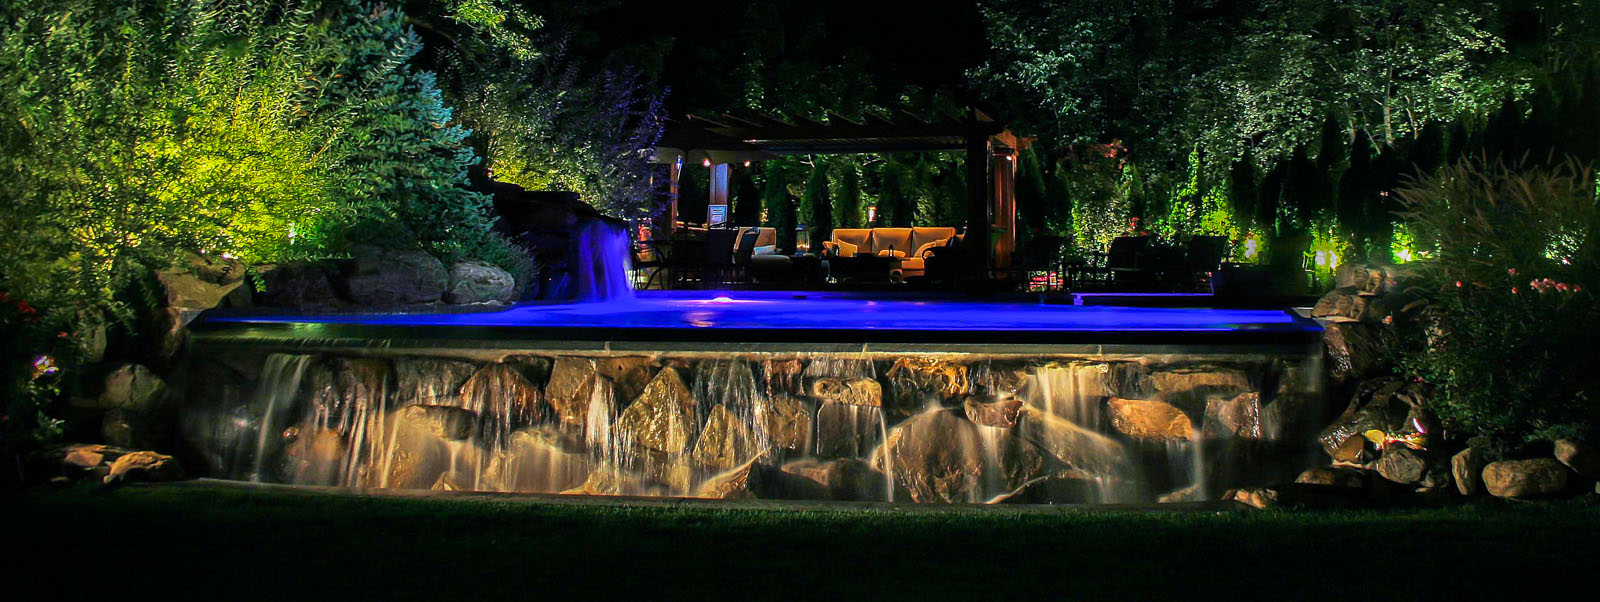 swimming pool with landscape lighting - nj